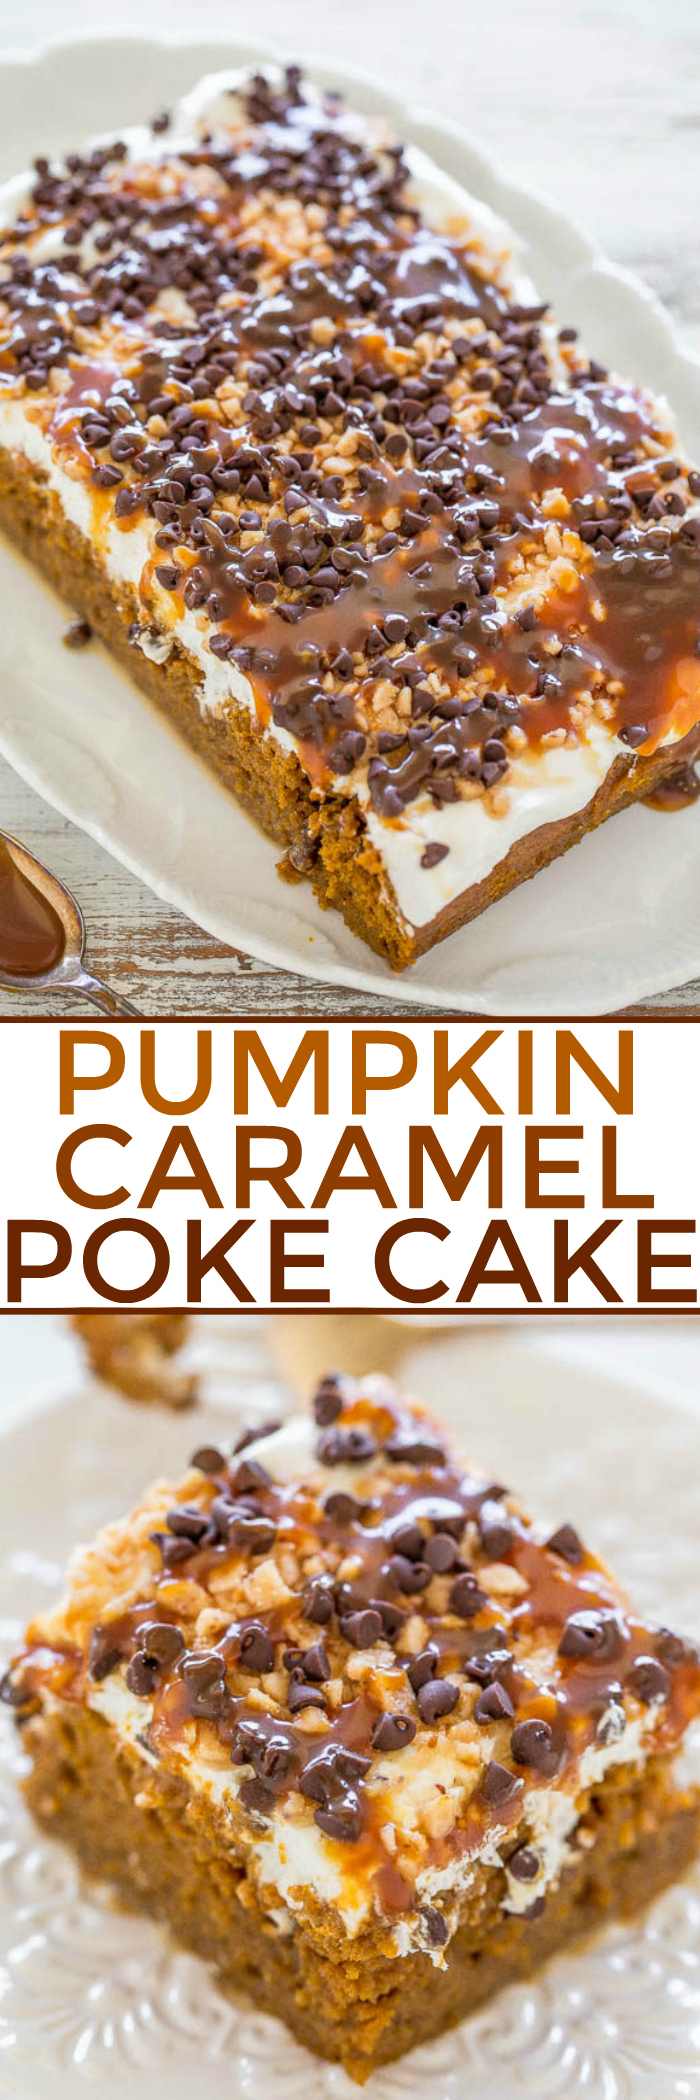 Pumpkin Poke Cake — Easy and the BEST PUMPKIN CAKE ever!! Two kinds of CARAMEL sauce, TOFFEE bits, CHOCOLATE CHIPS, whipped topping and more!! A total WINNER you must make!!